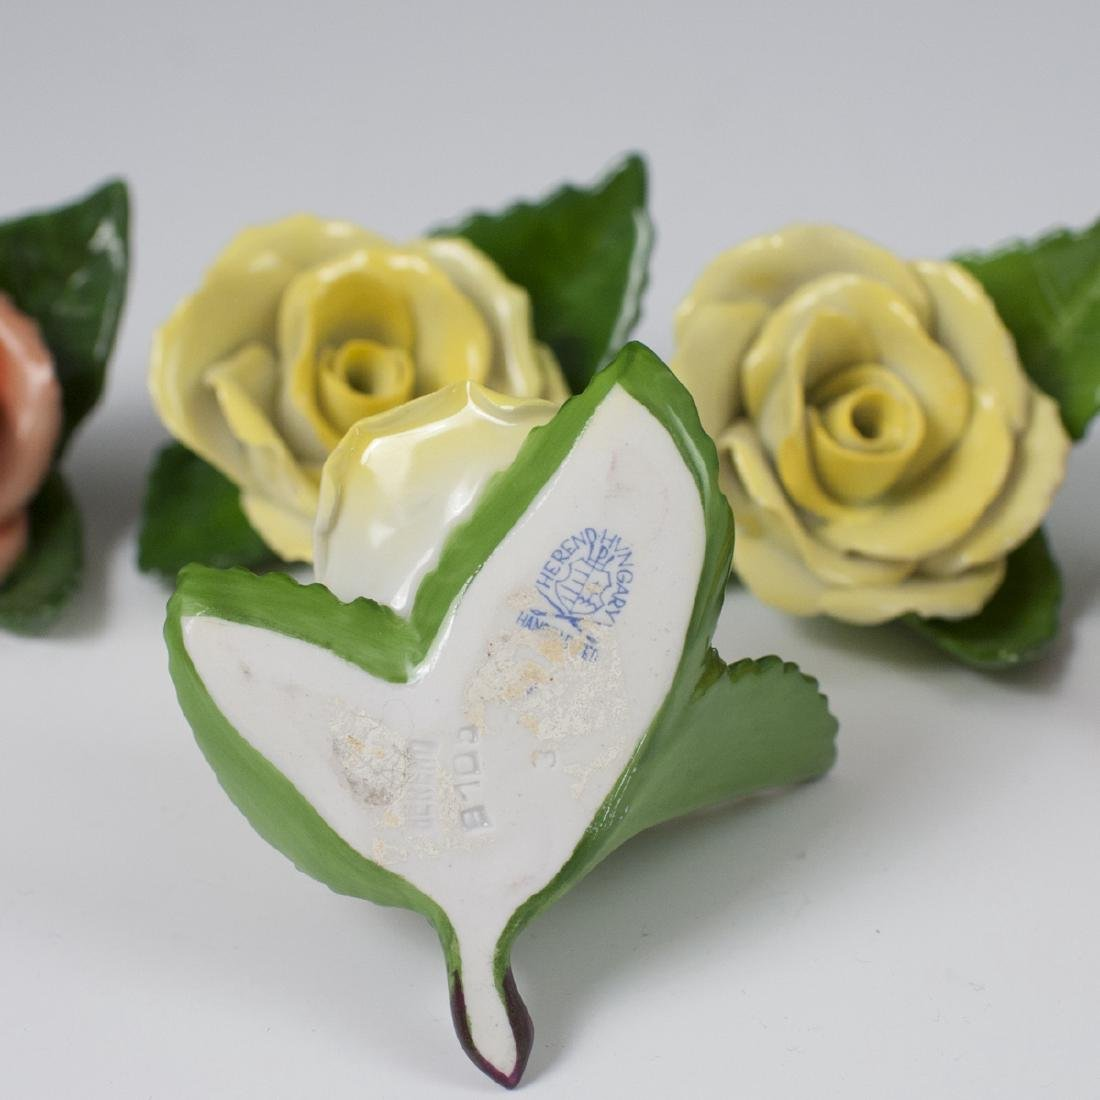 Herend Porcelain Rose Place Card Holders - 3